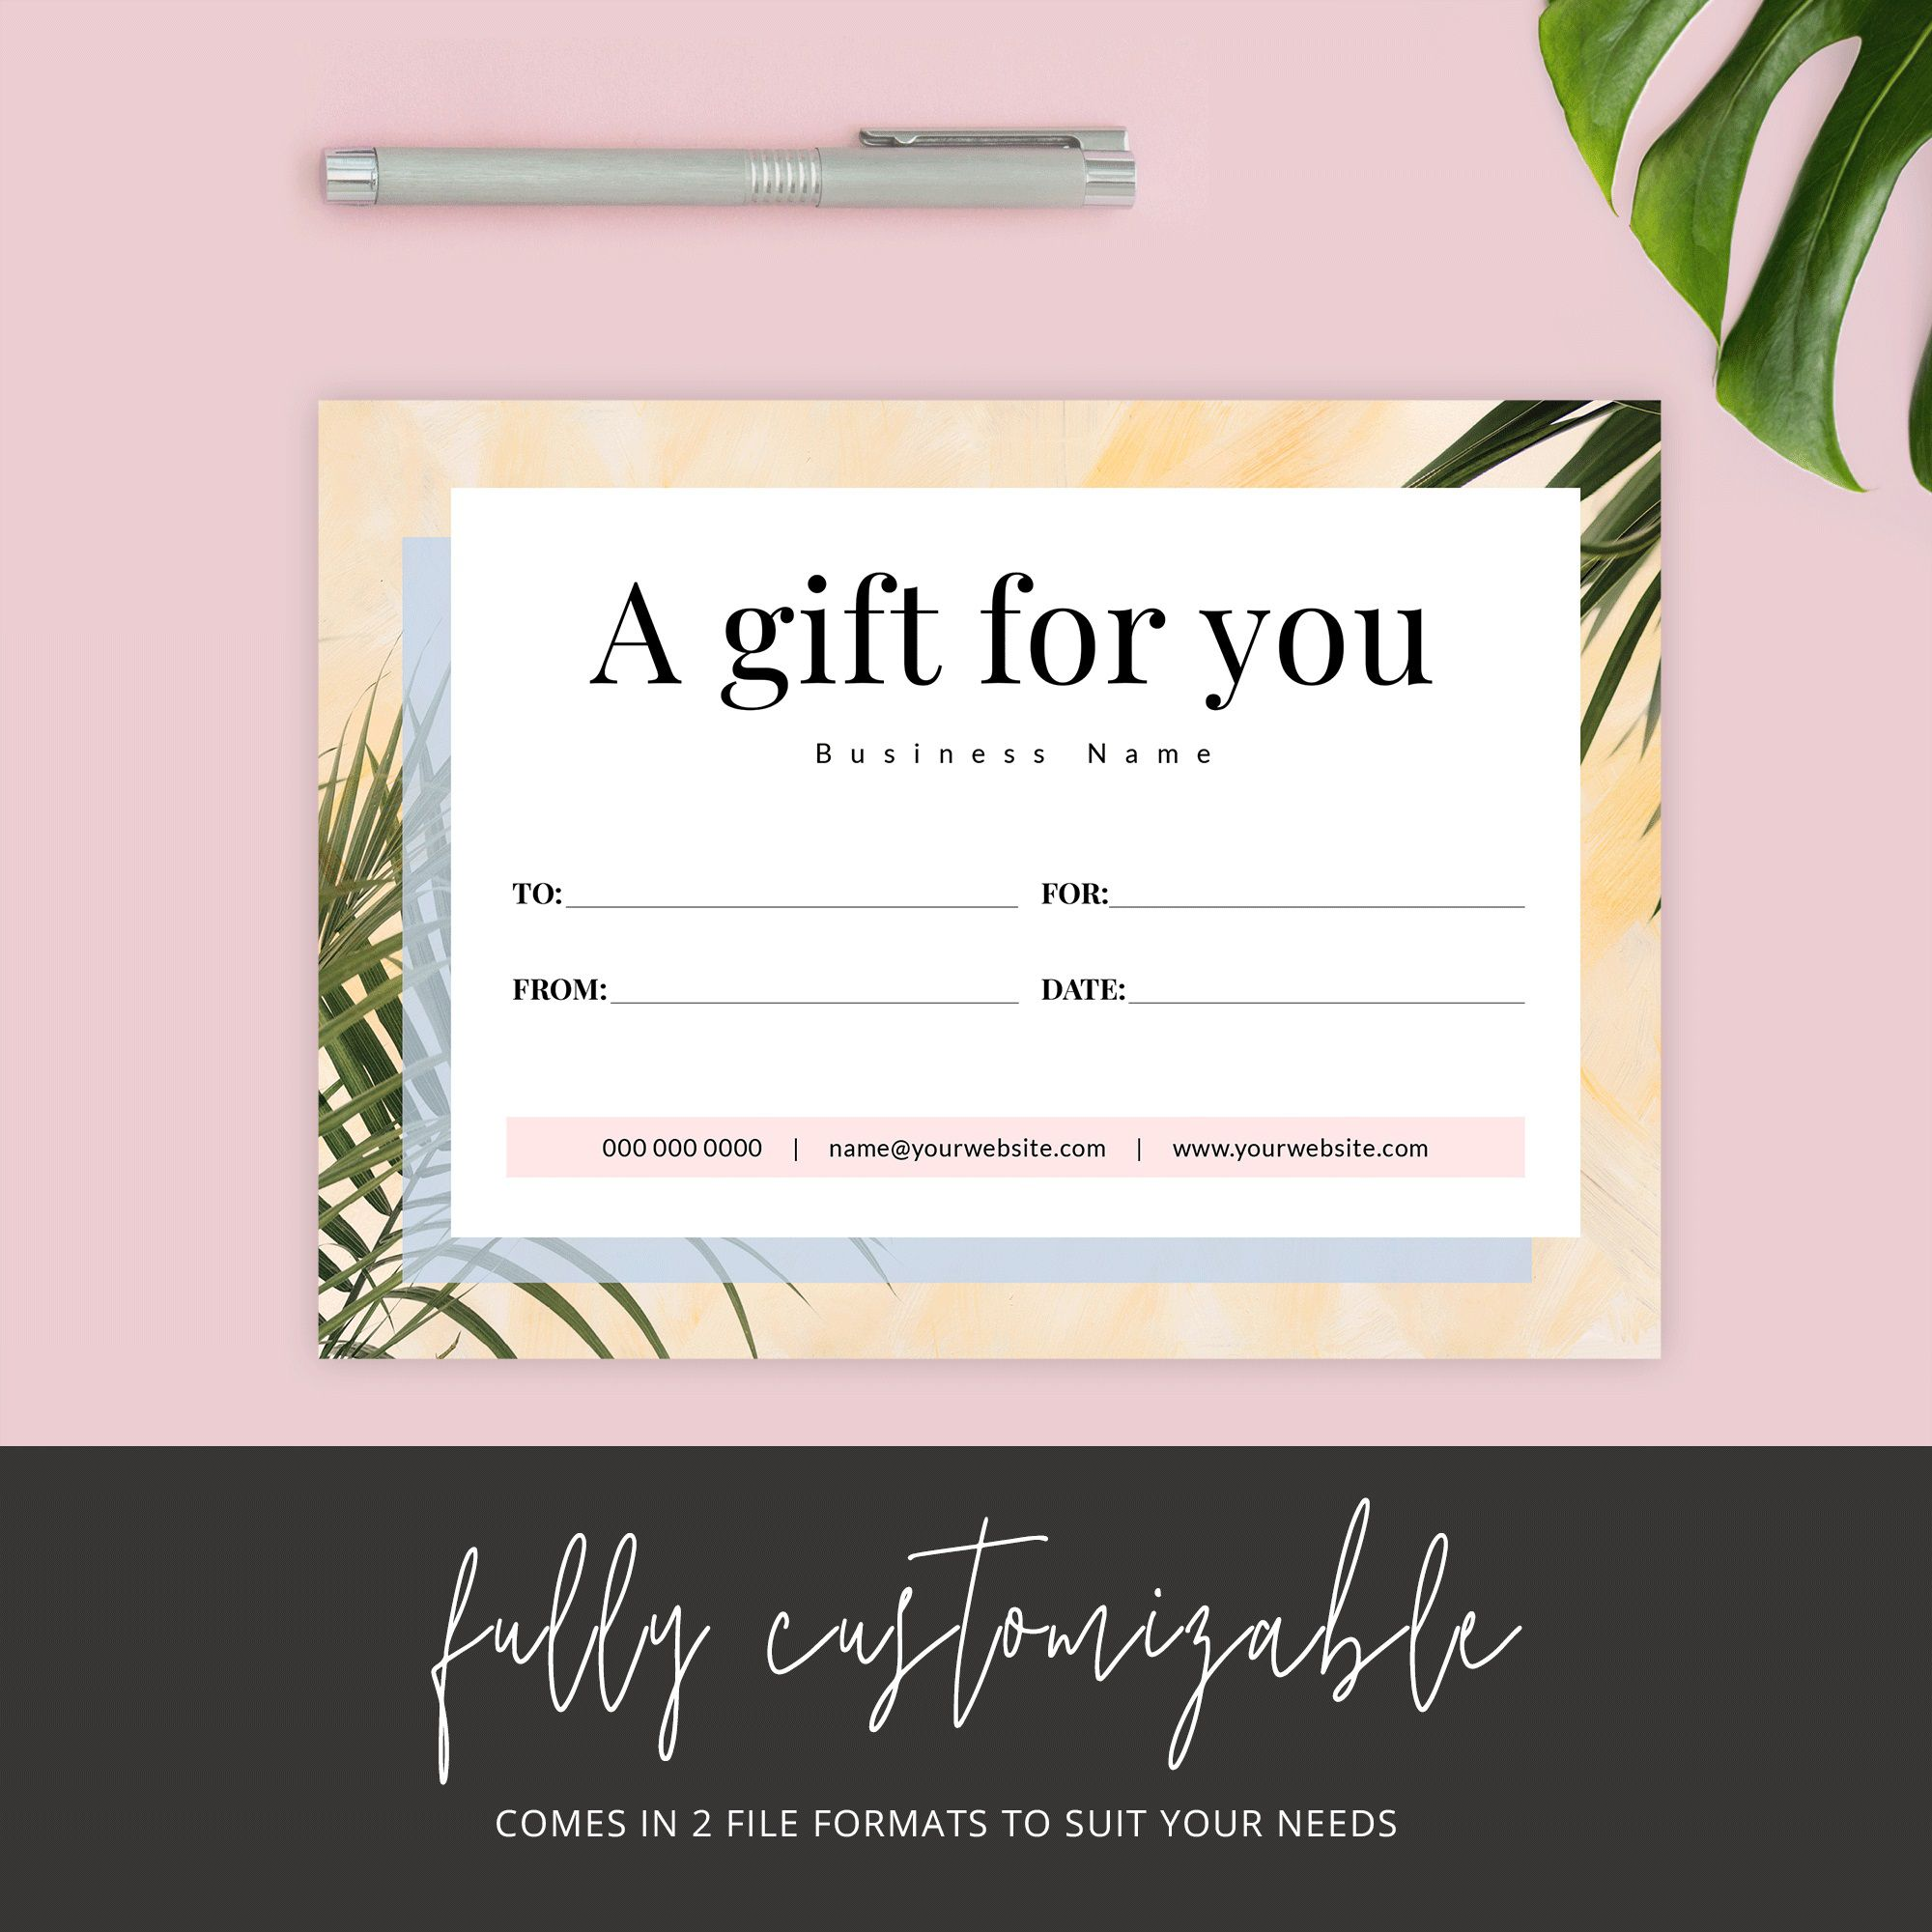 006 Archaicawful Printable Gift Certificate Template Design  Card Free Christma MassageFull